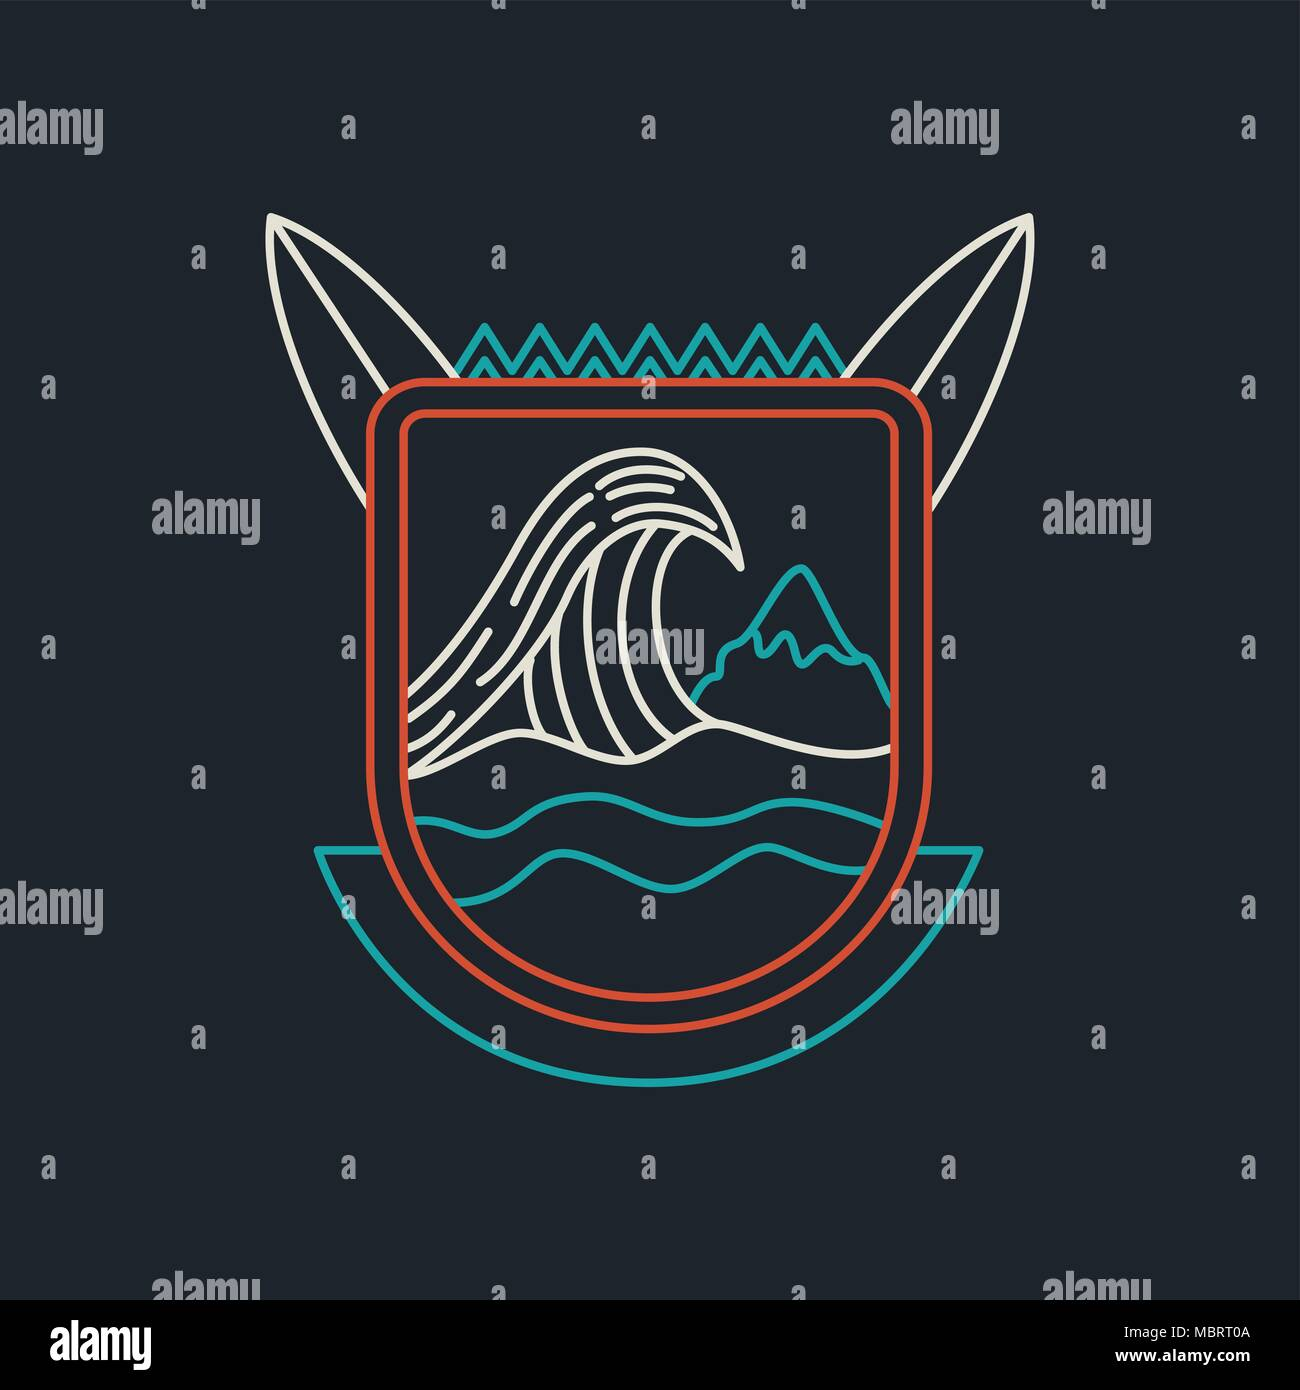 Summer surf icon in modern line style. Flat vacation emblem design with ocean wave, surfboard and mountains. EPS10 vector. - Stock Vector